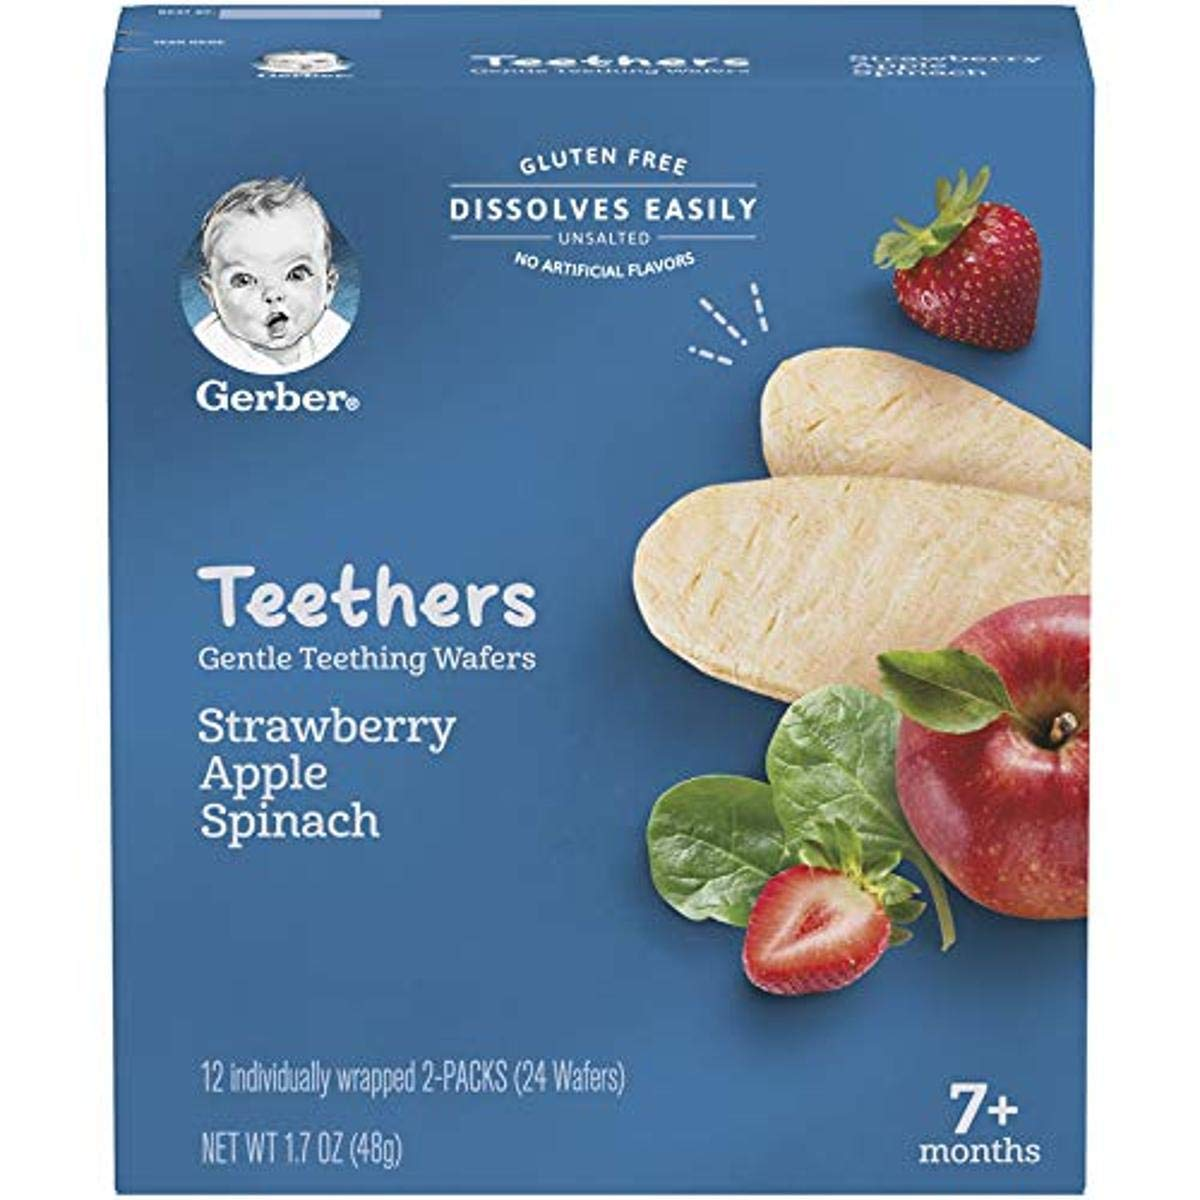 Gerber Teethers Gentle Teething Wafers, 6 Count, Strawberry Apple Spinach, 20.4 Oz